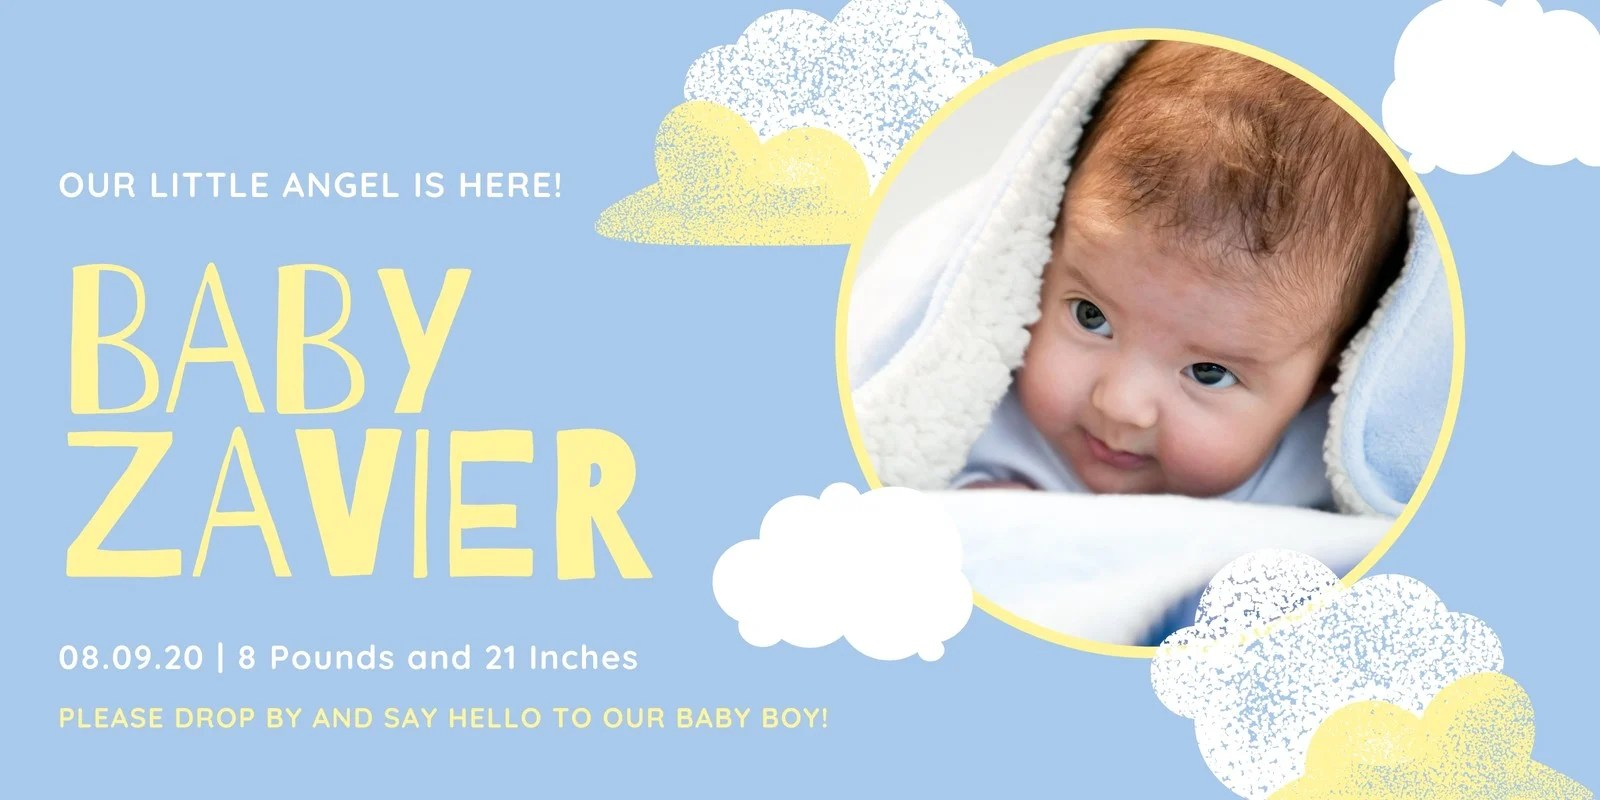 Starry cute baby birth announcement poster design. Free Printable Customizable Birth Announcement Templates Canva